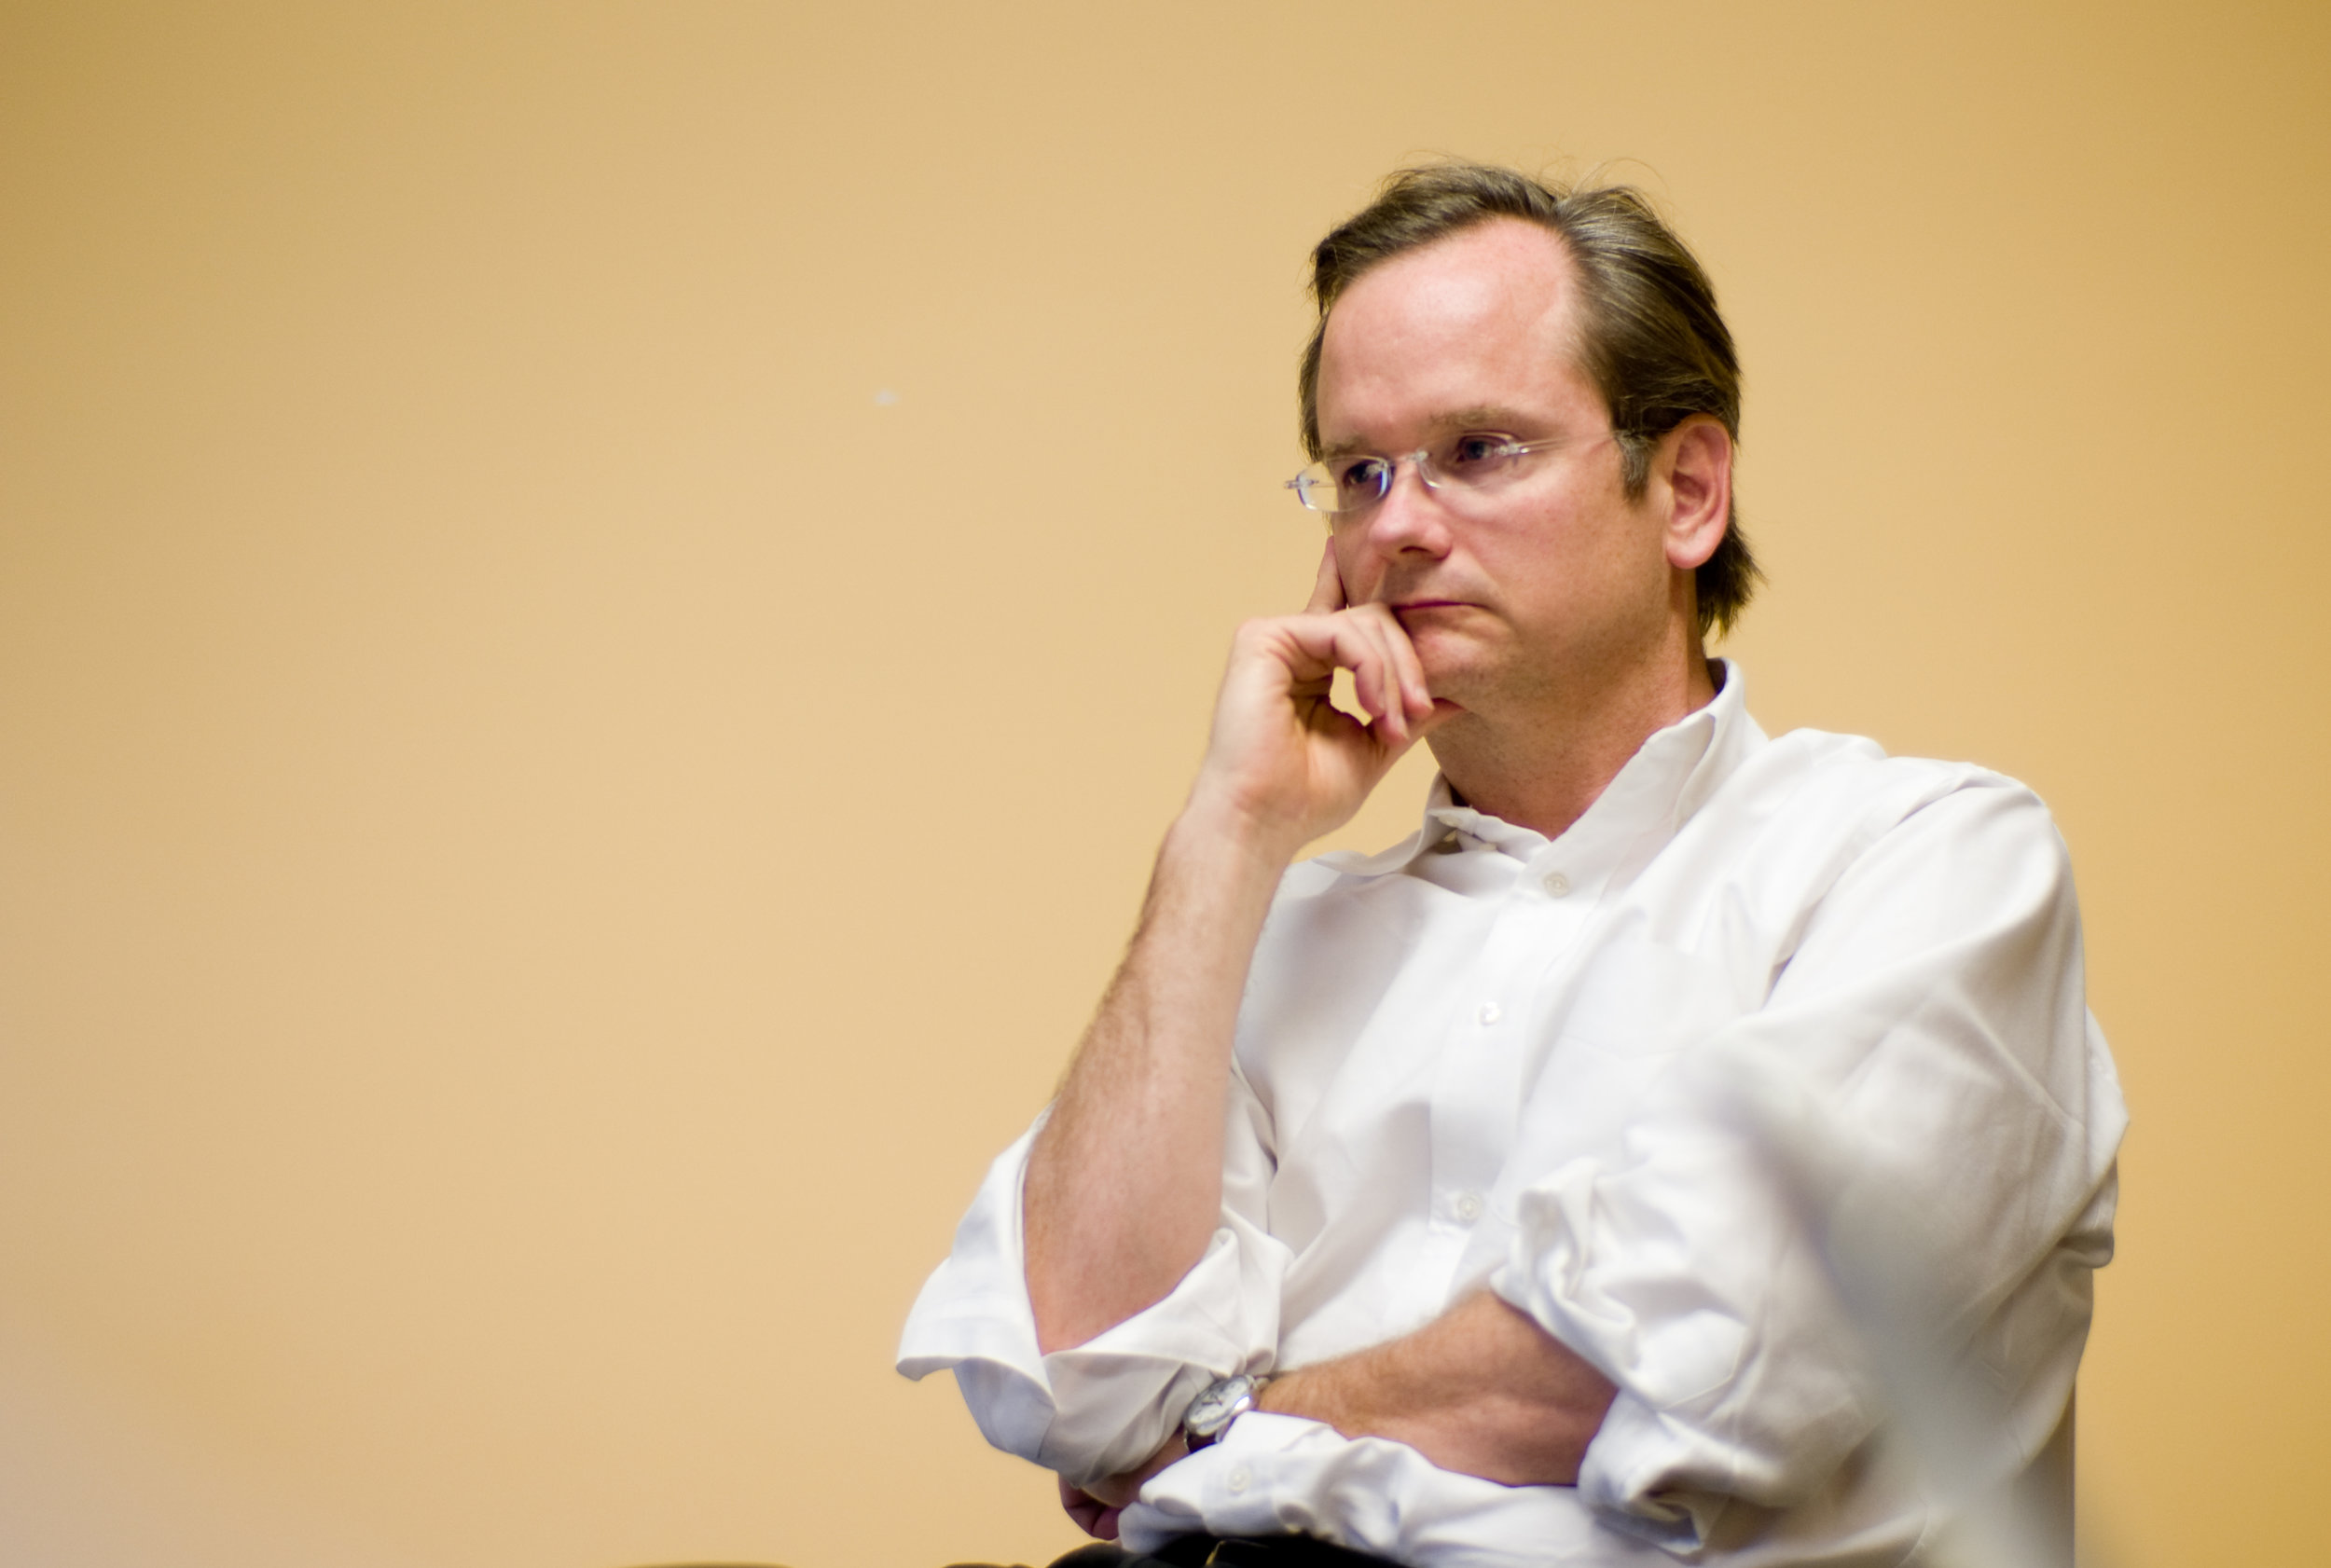 """Dr. Lessig's foundational work """"The Laws of Cyberspace"""" was published 20 years ago."""